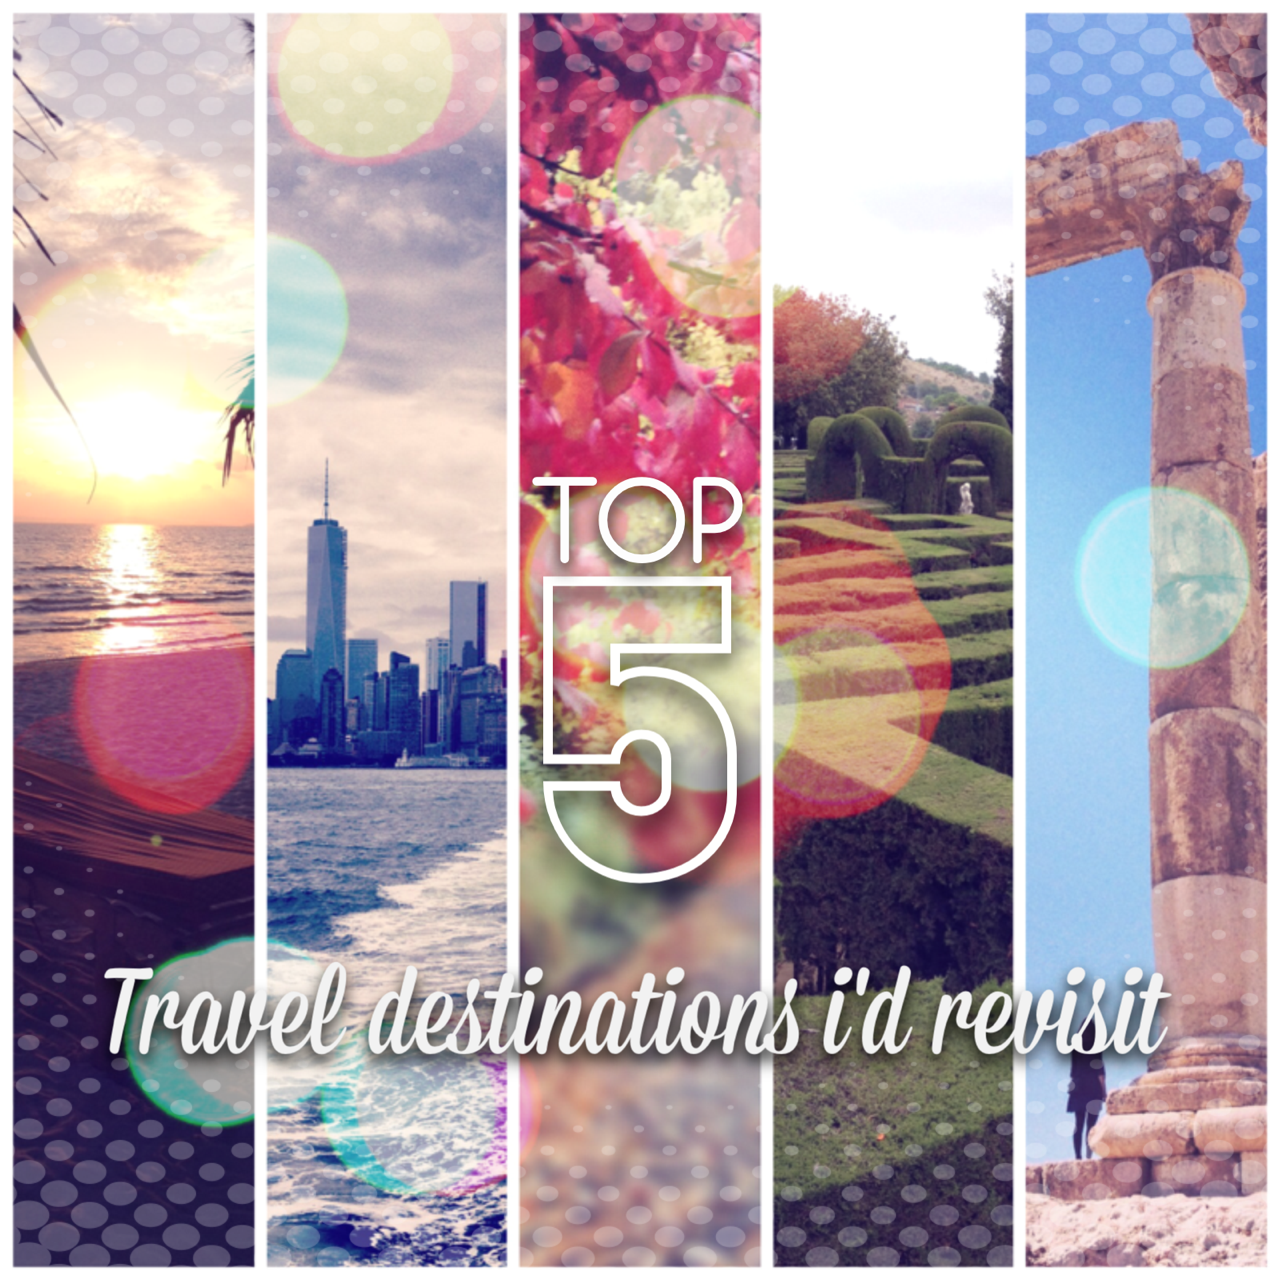 top 5 travel destinations to revisit